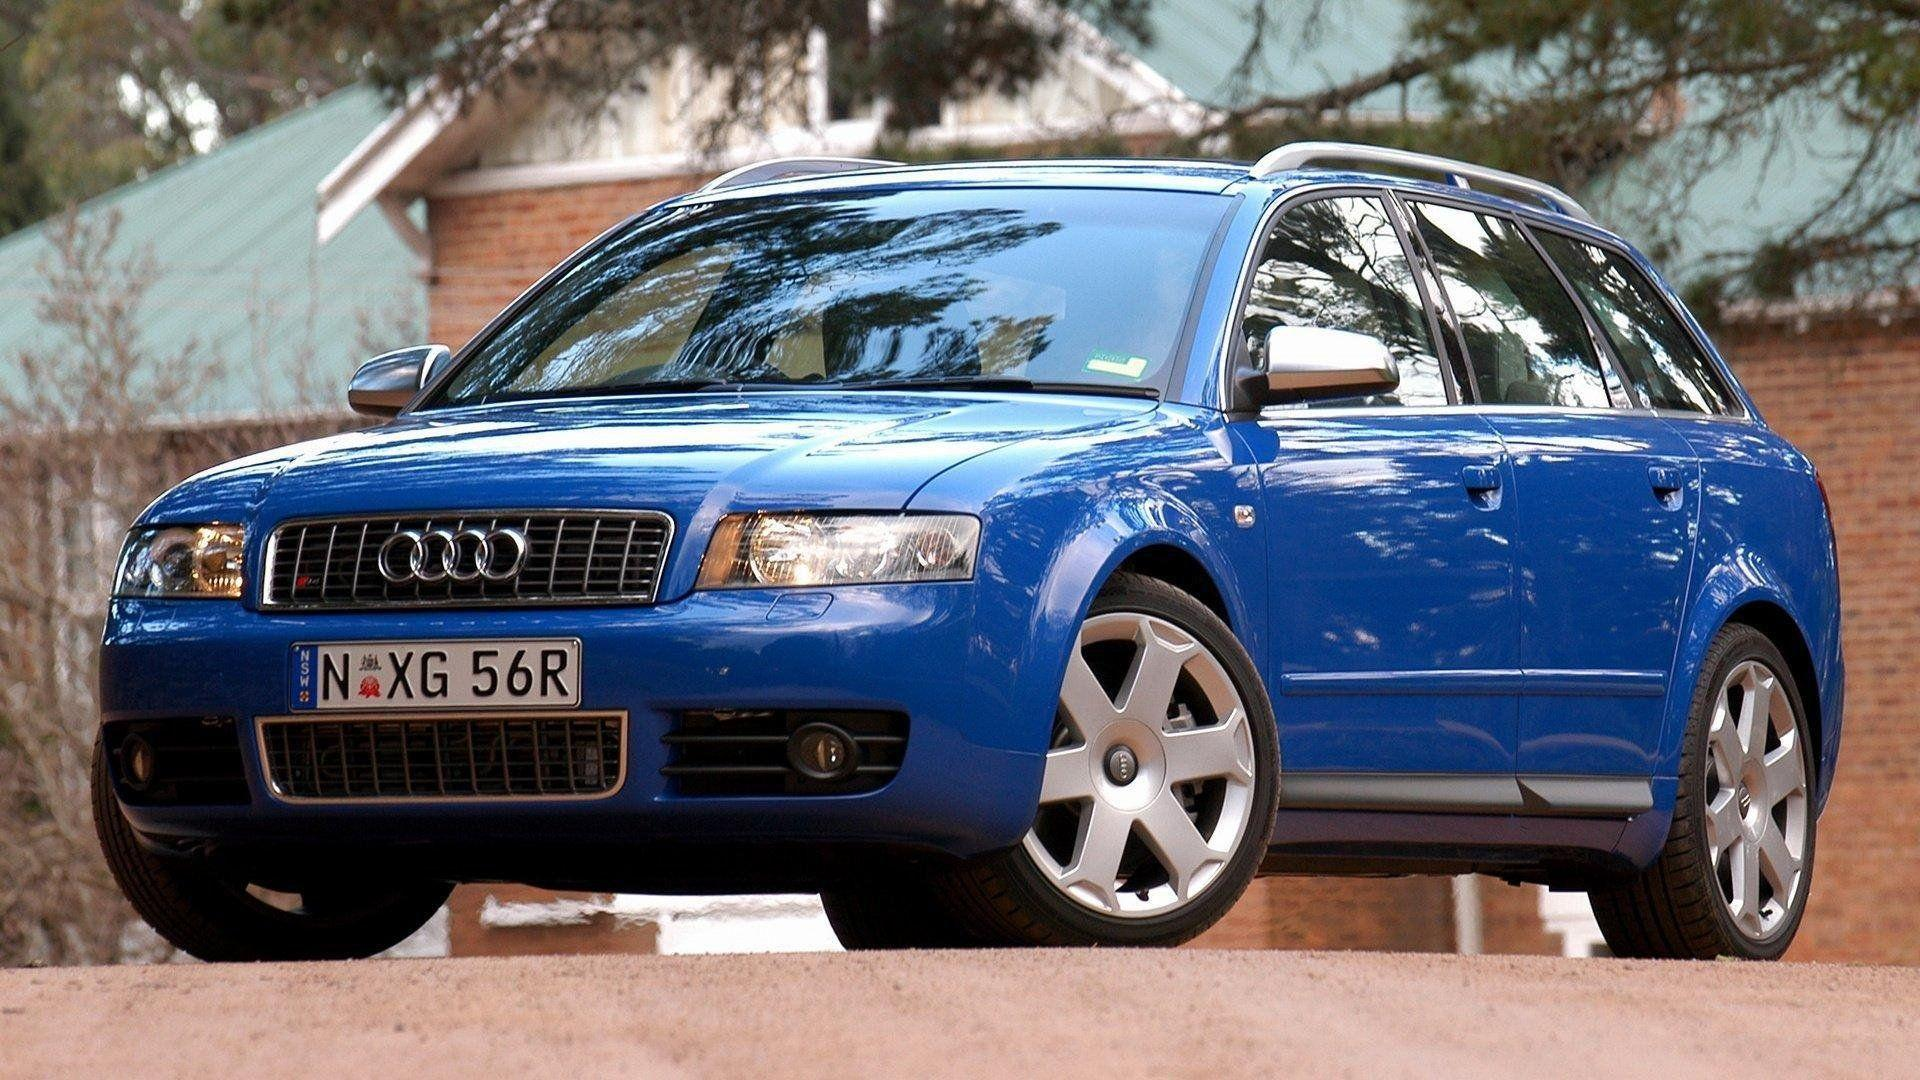 Car 2003 Audi S4 Avant HD Wallpapers for iPhone, Android & Desktop